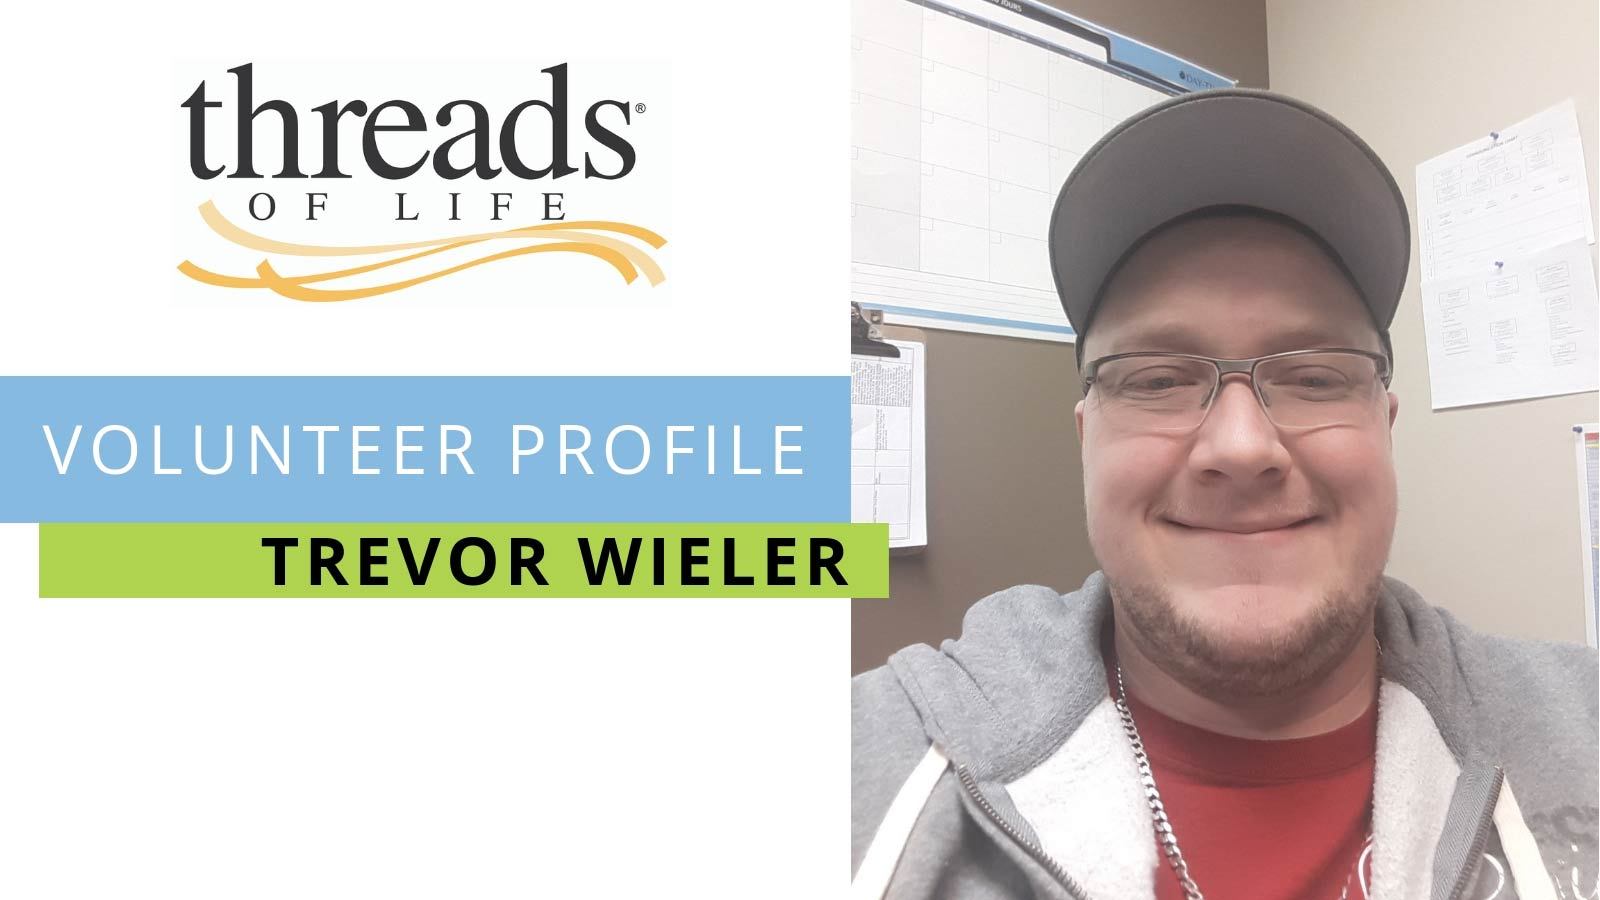 Volunteer Profile Trevor Wieler - selfie of smiling man in glasses and ball cap